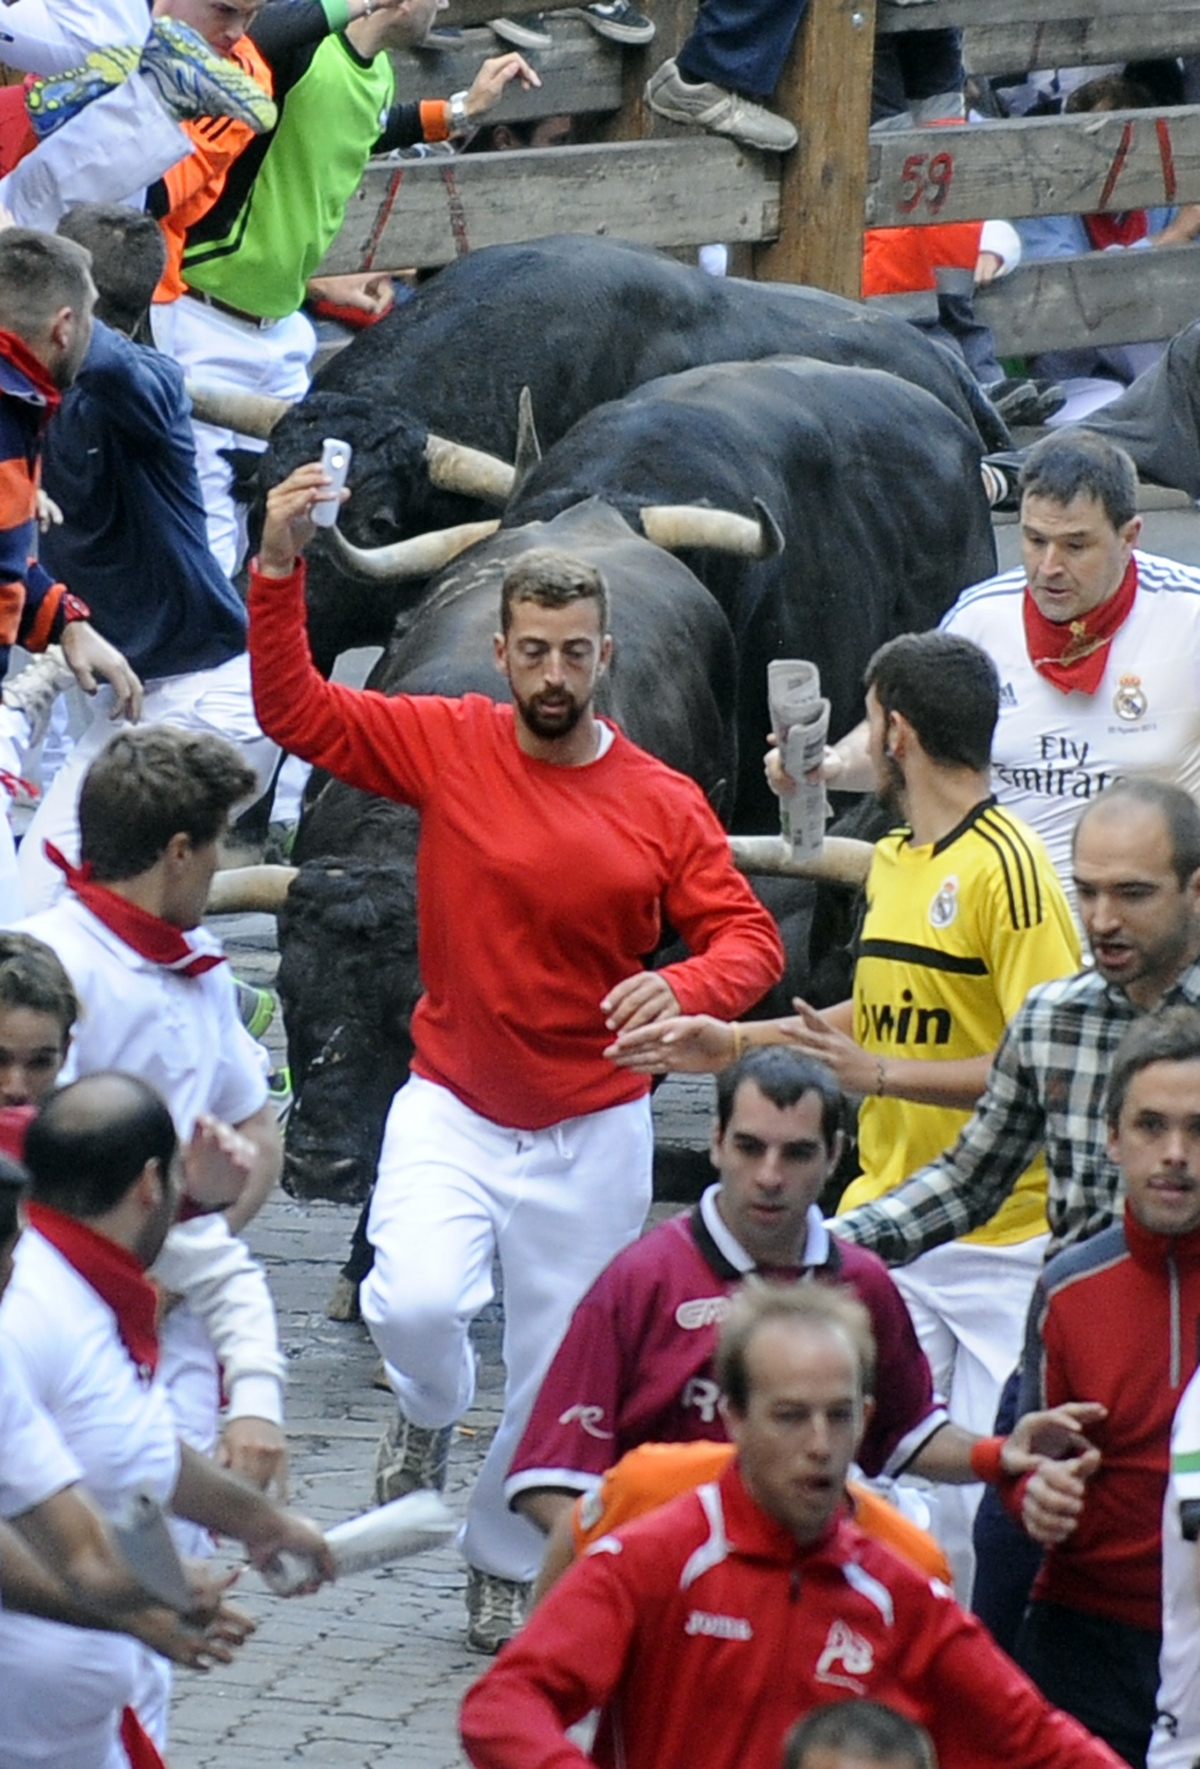 the pamplona bull run danger bull s Pamplona is much more than just being drunk and running with bulls  sides    making them the most dangerous bulls to run with, let alone fight in the ring.